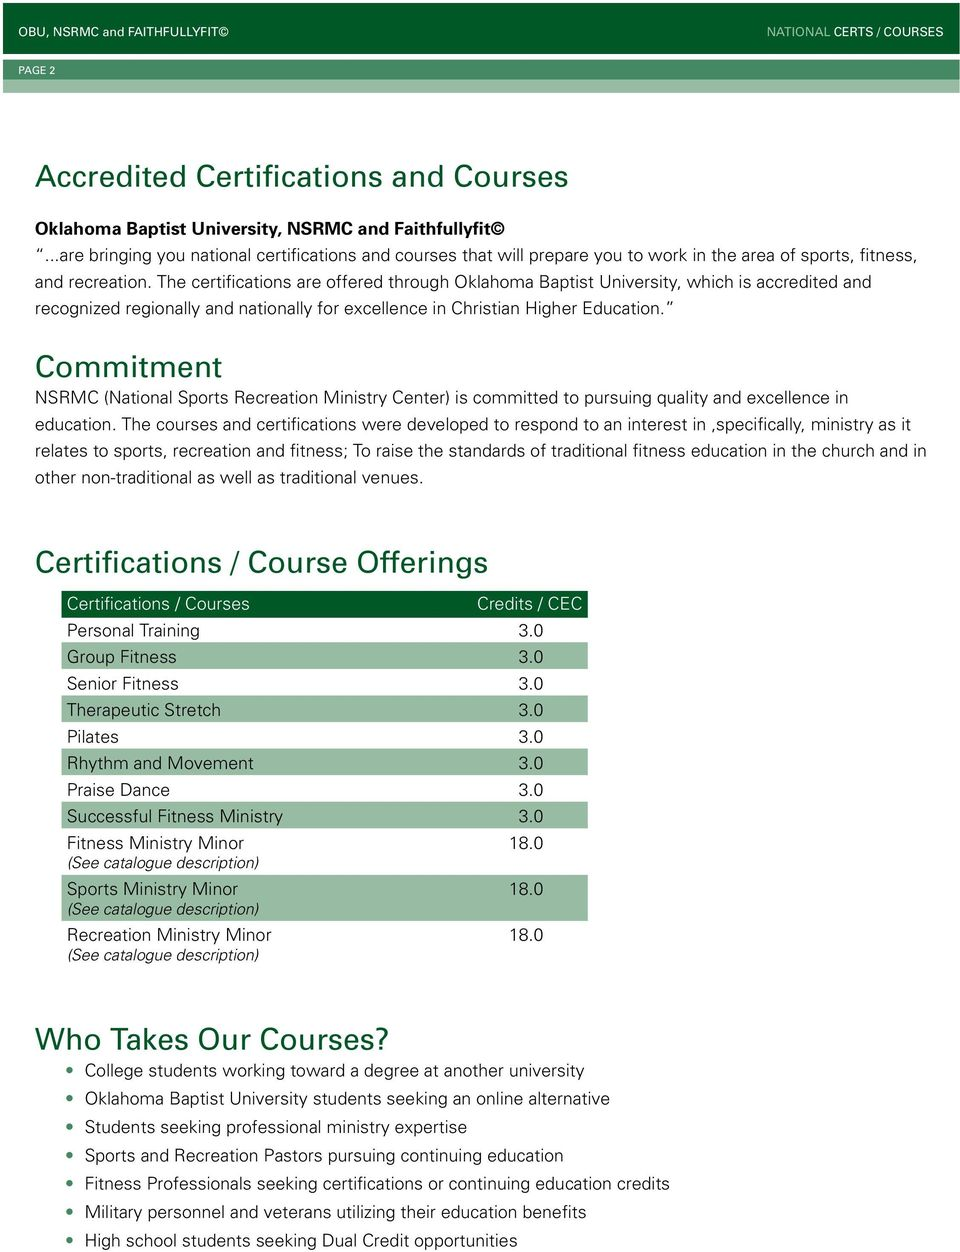 The certifications are offered through Oklahoma Baptist University, which is accredited and recognized regionally and nationally for excellence in Christian Higher Education.